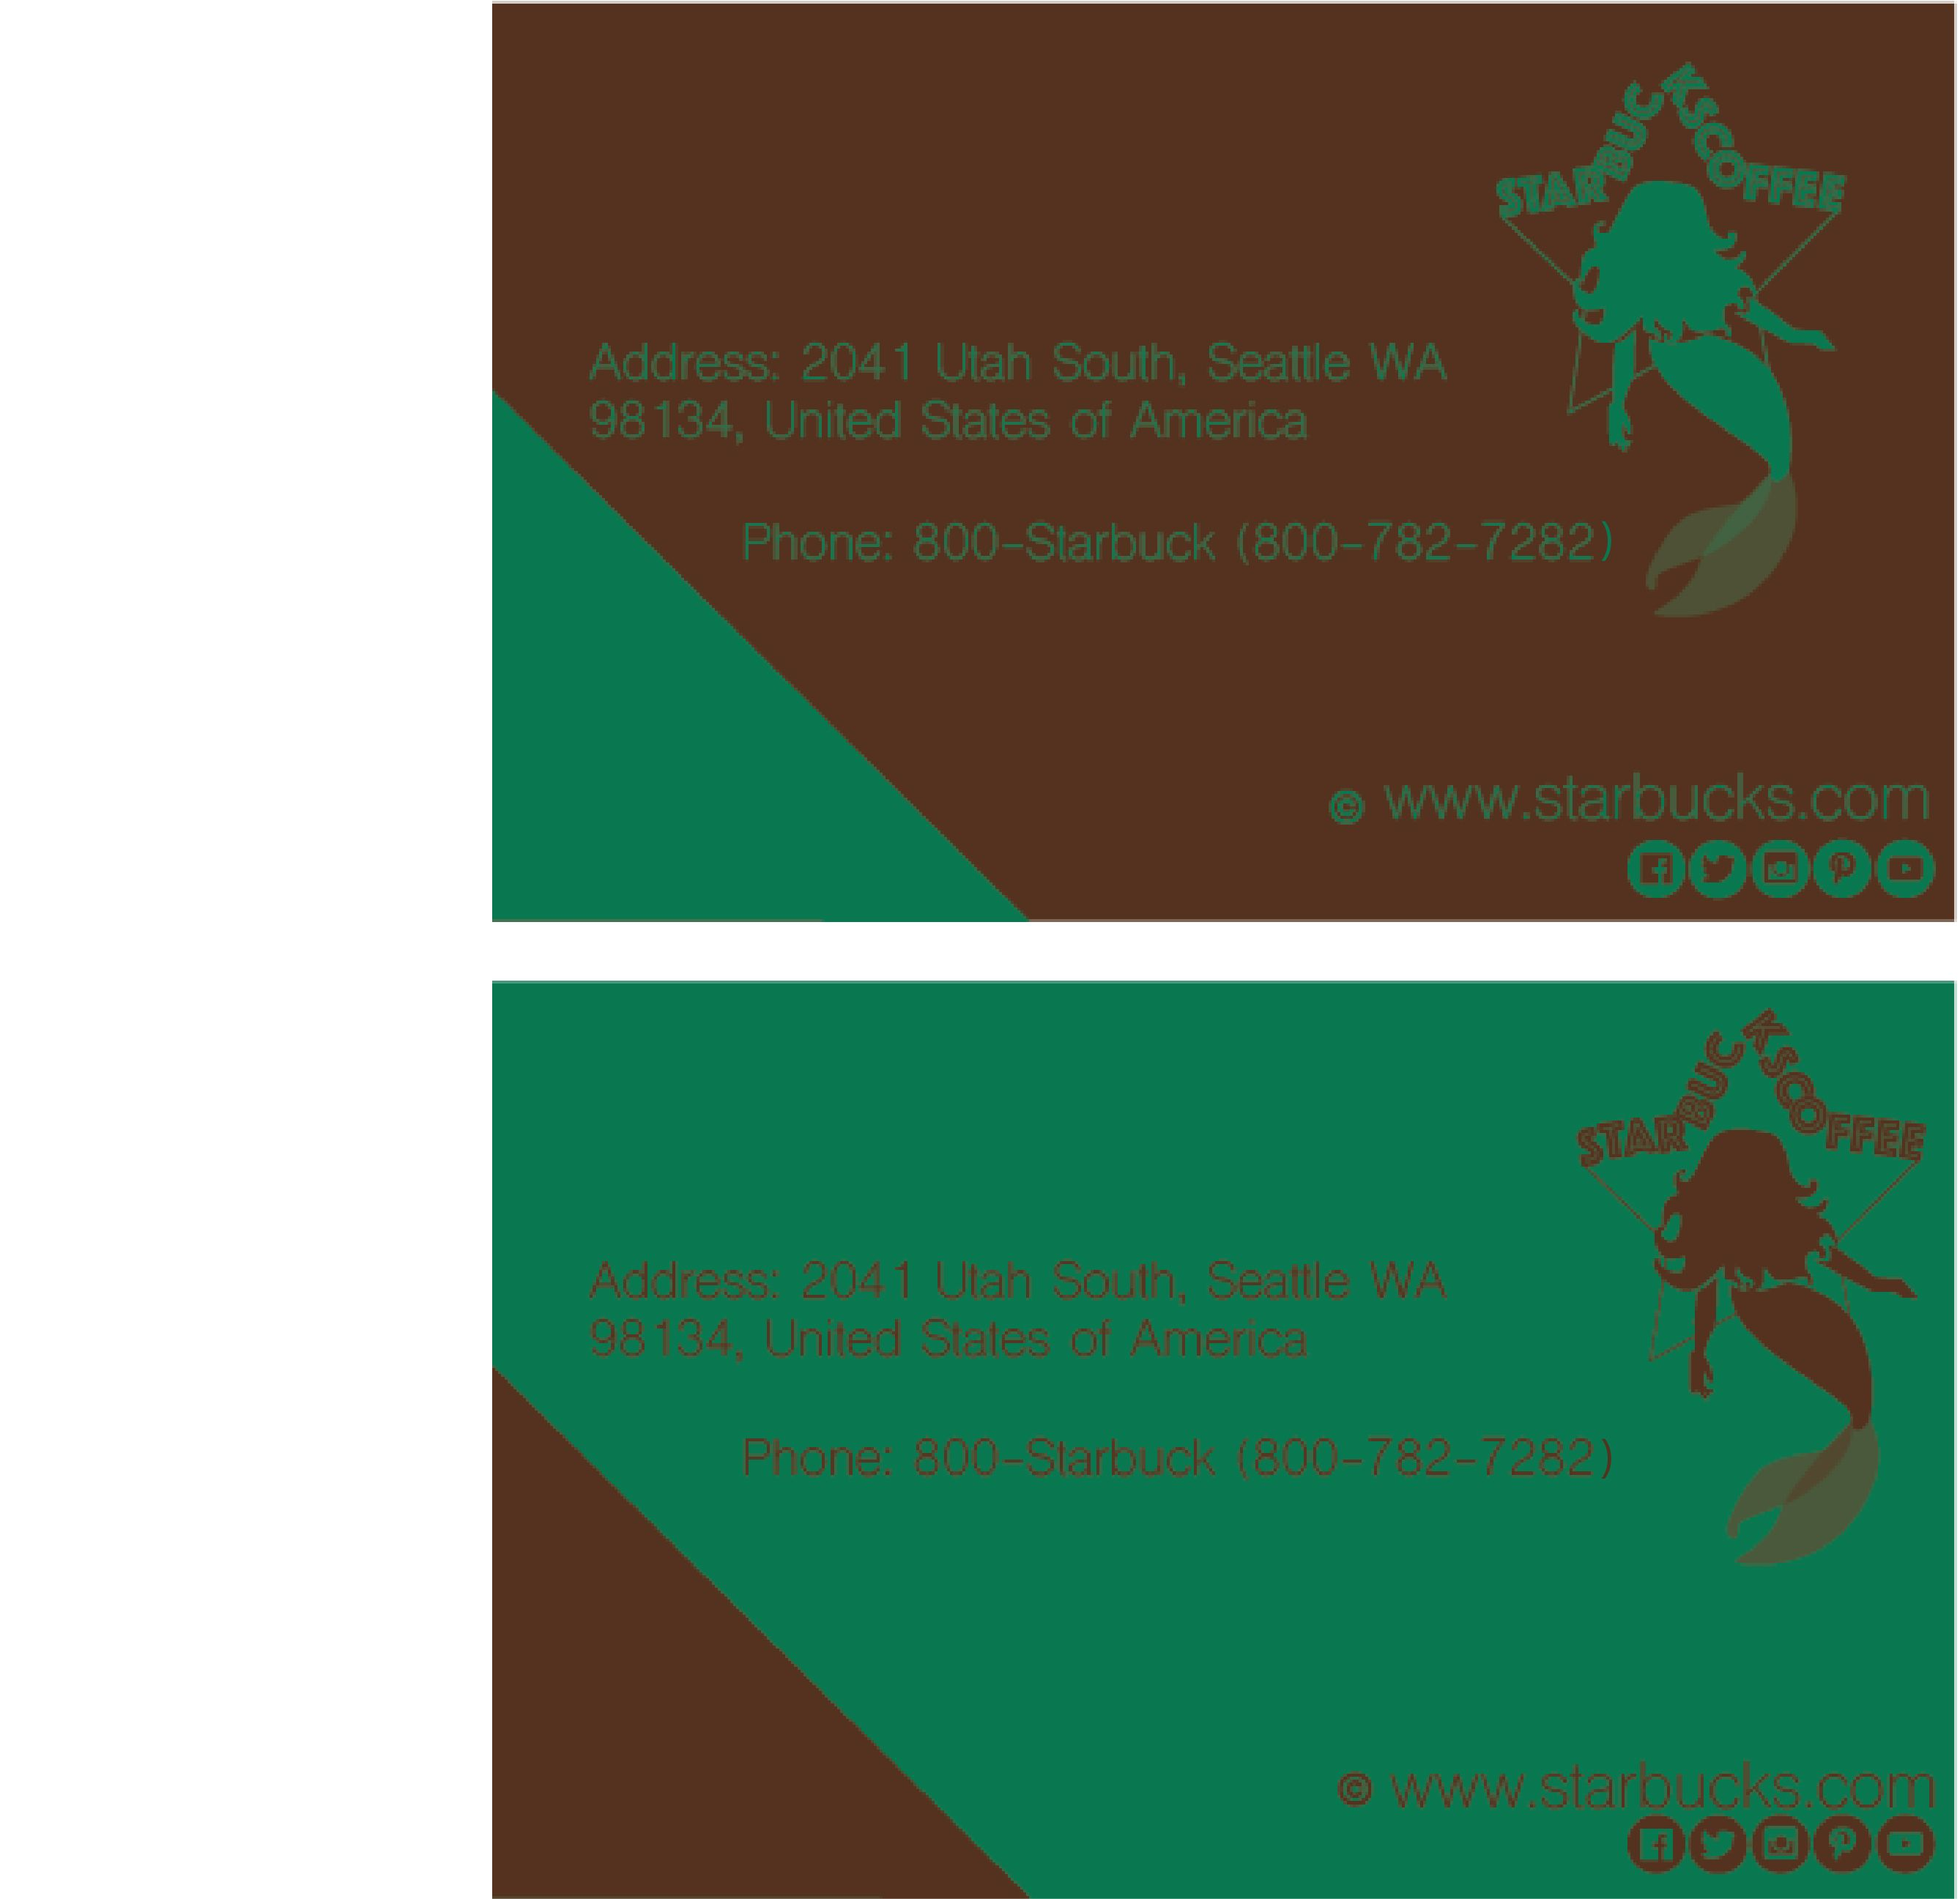 Starbucks Business Card Gallery - Free Business Cards